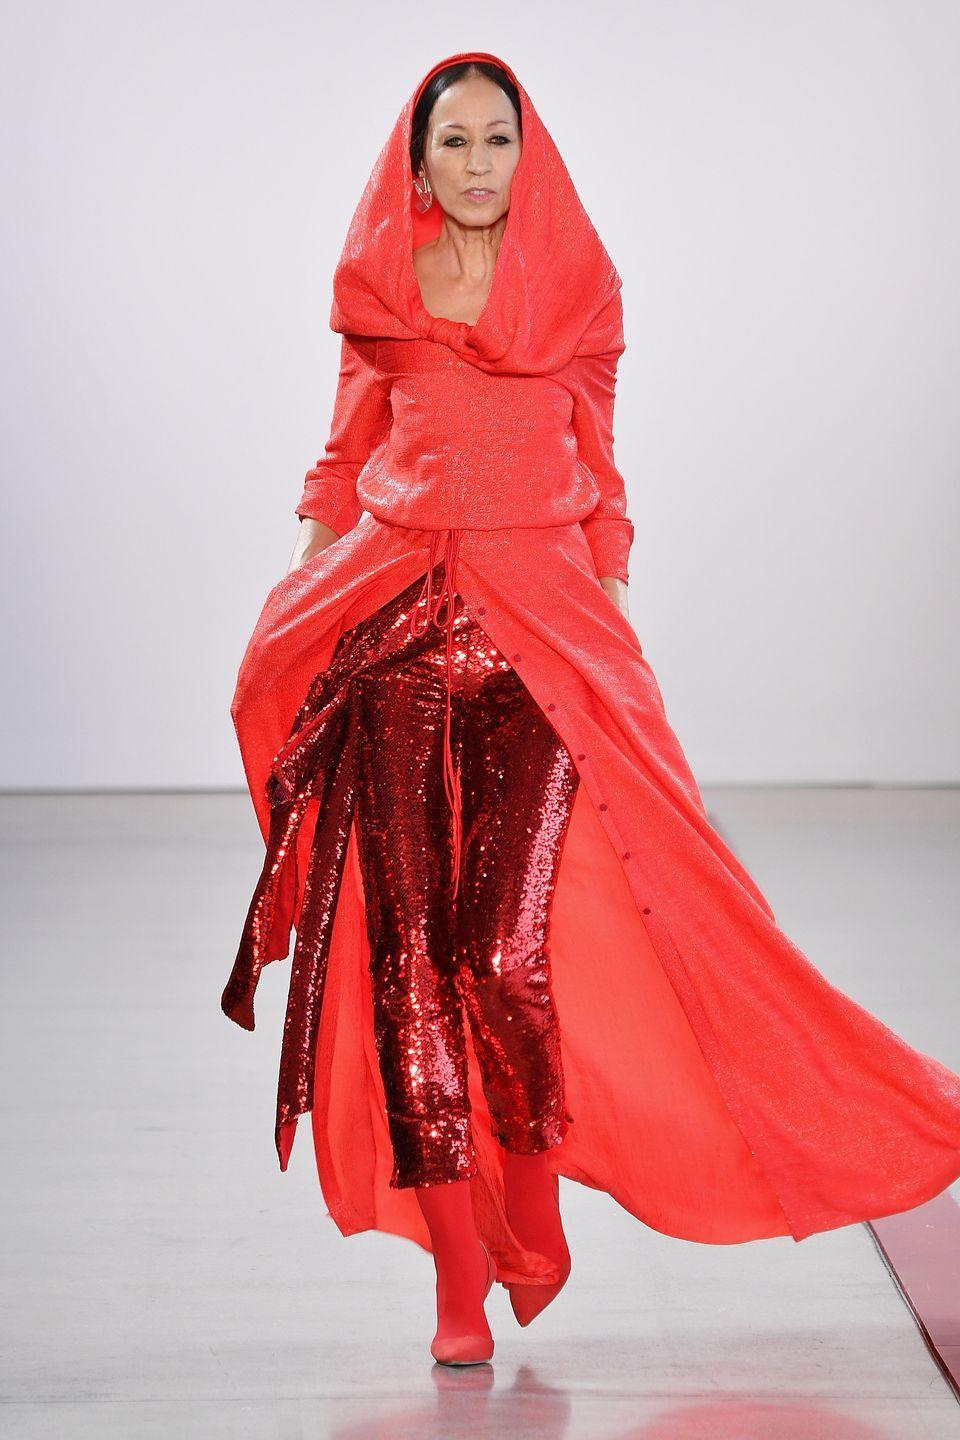 <p>Pat Cleveland was a trailblazer in the fashion industry in the '60s and '70s and continues to be today. Last year—at 68 years old!—she walked in the Hellessy show pictured here in this amazing red get-up. </p>